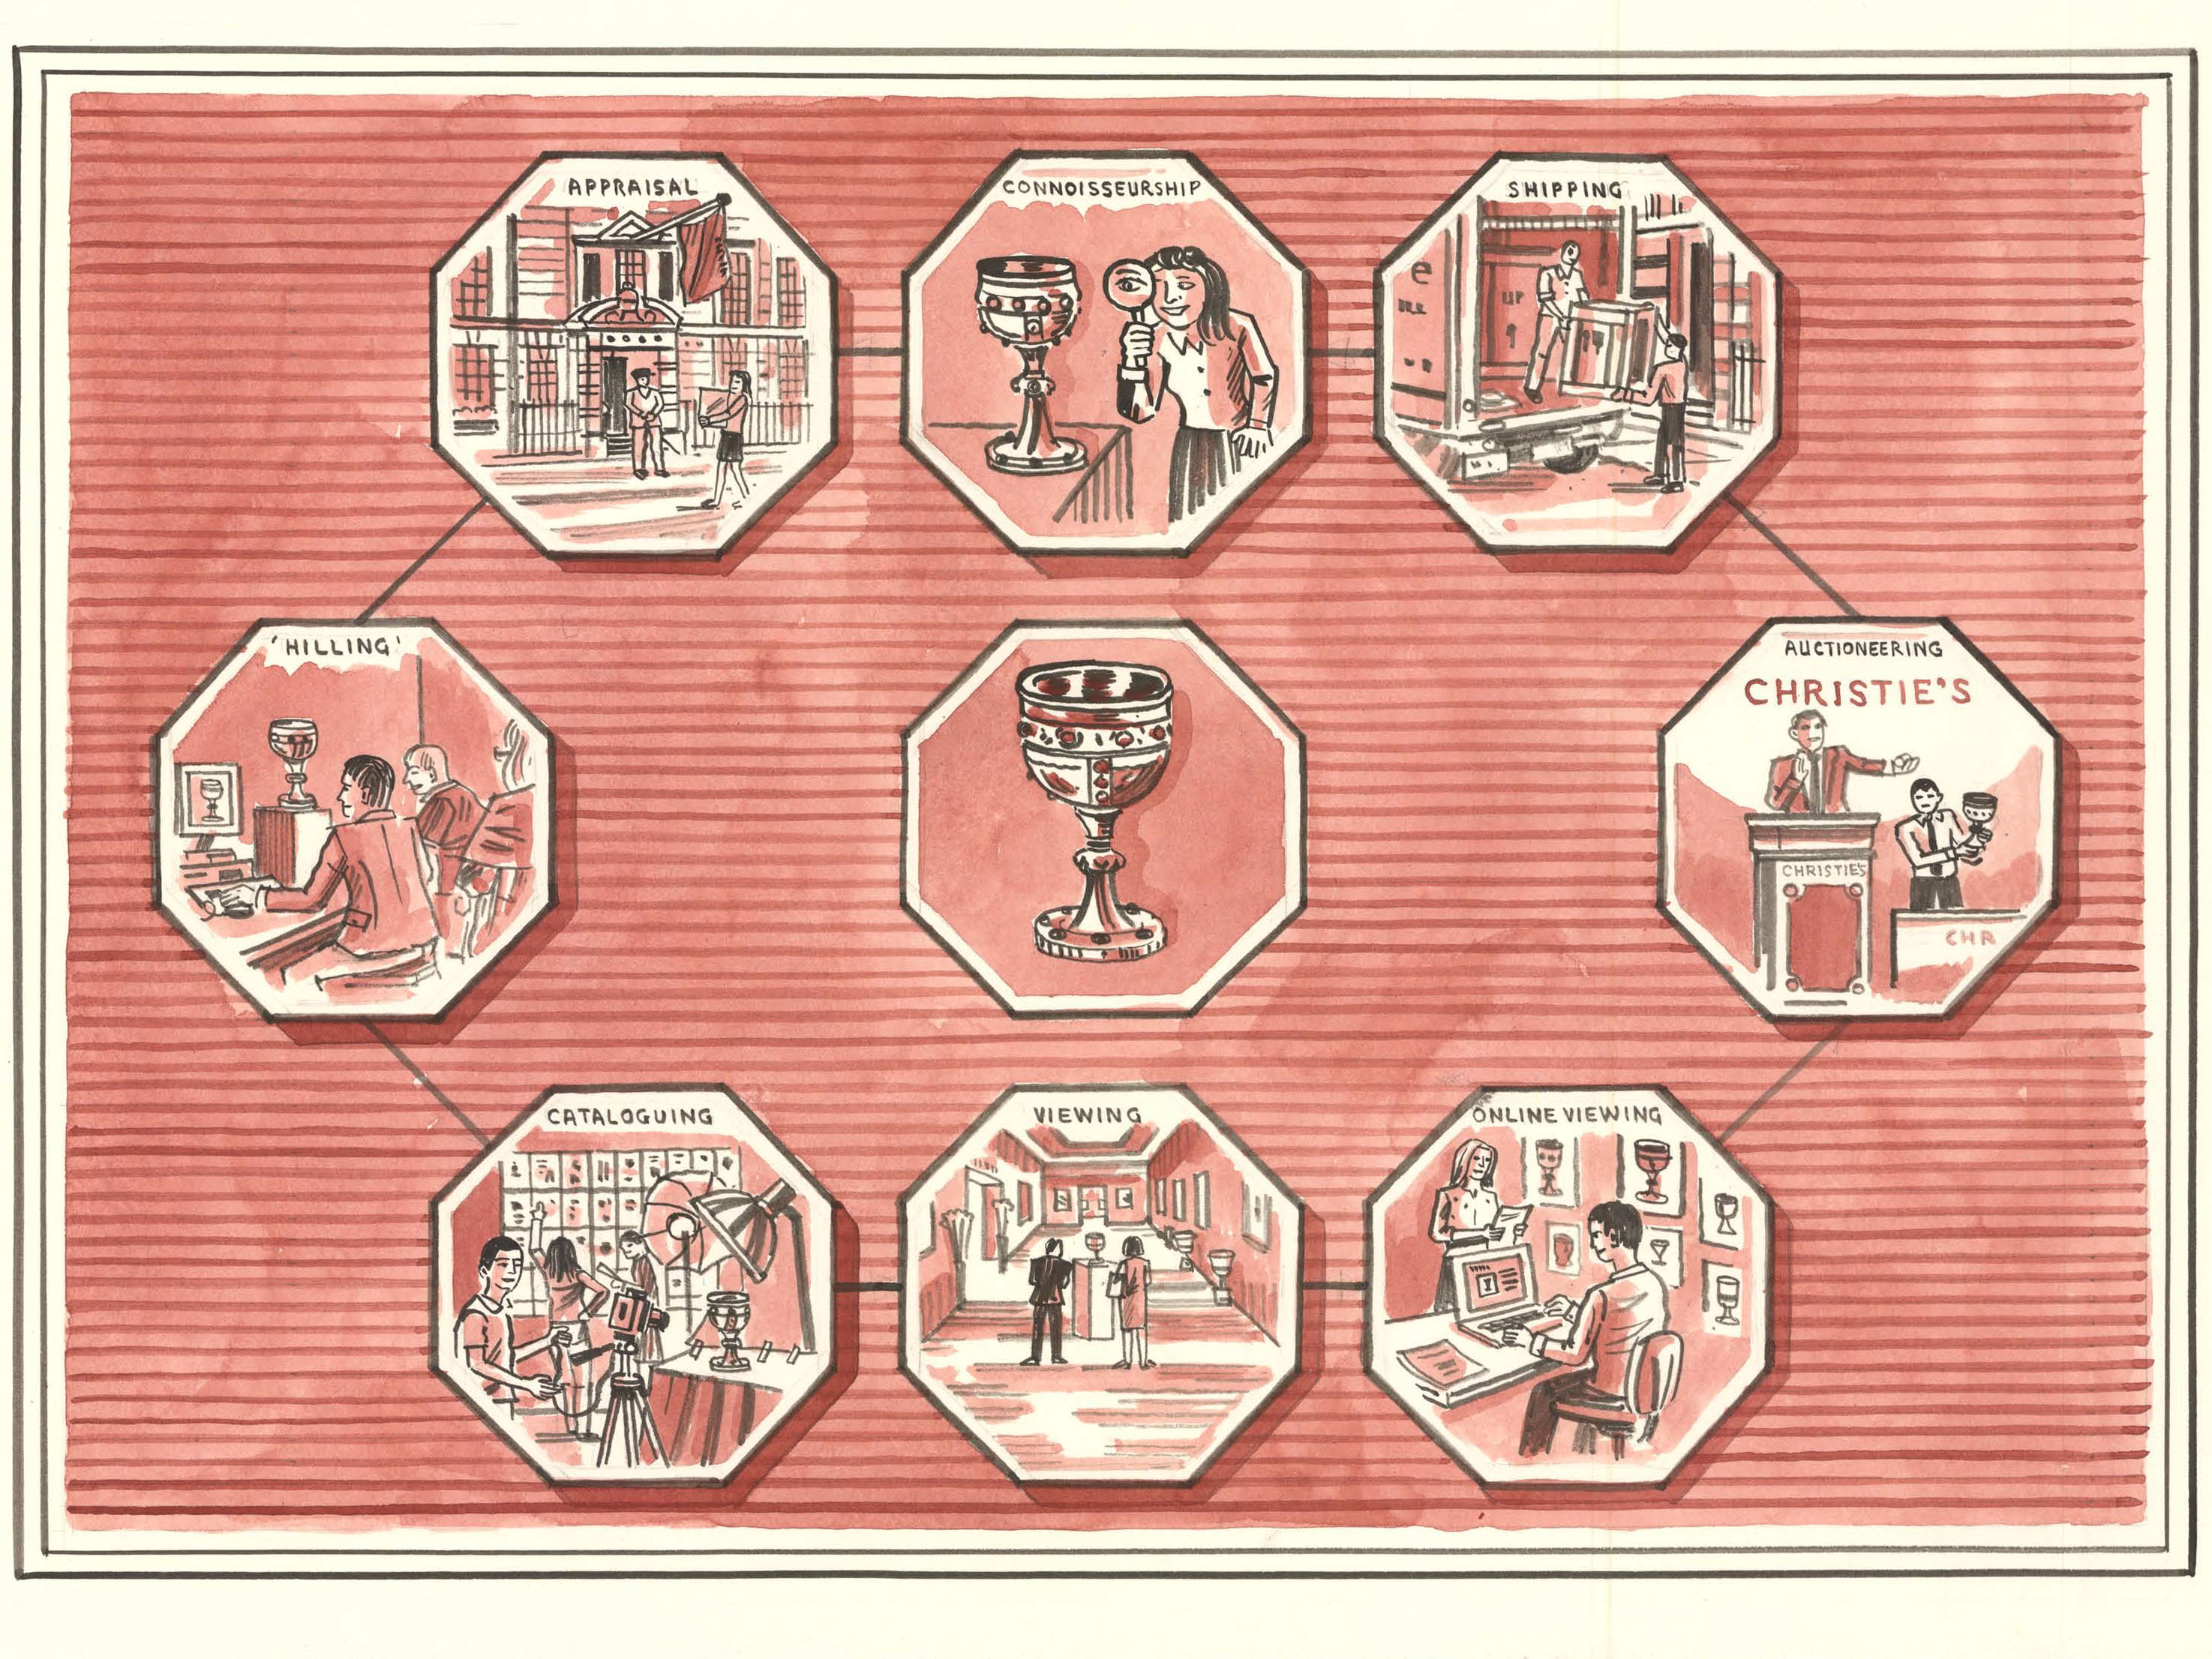 A close-up of Adam Dant's <i>Christie's: A History of the World in 250 Years</i>, featuring functions including appraisal, shipping, and cataloguing.